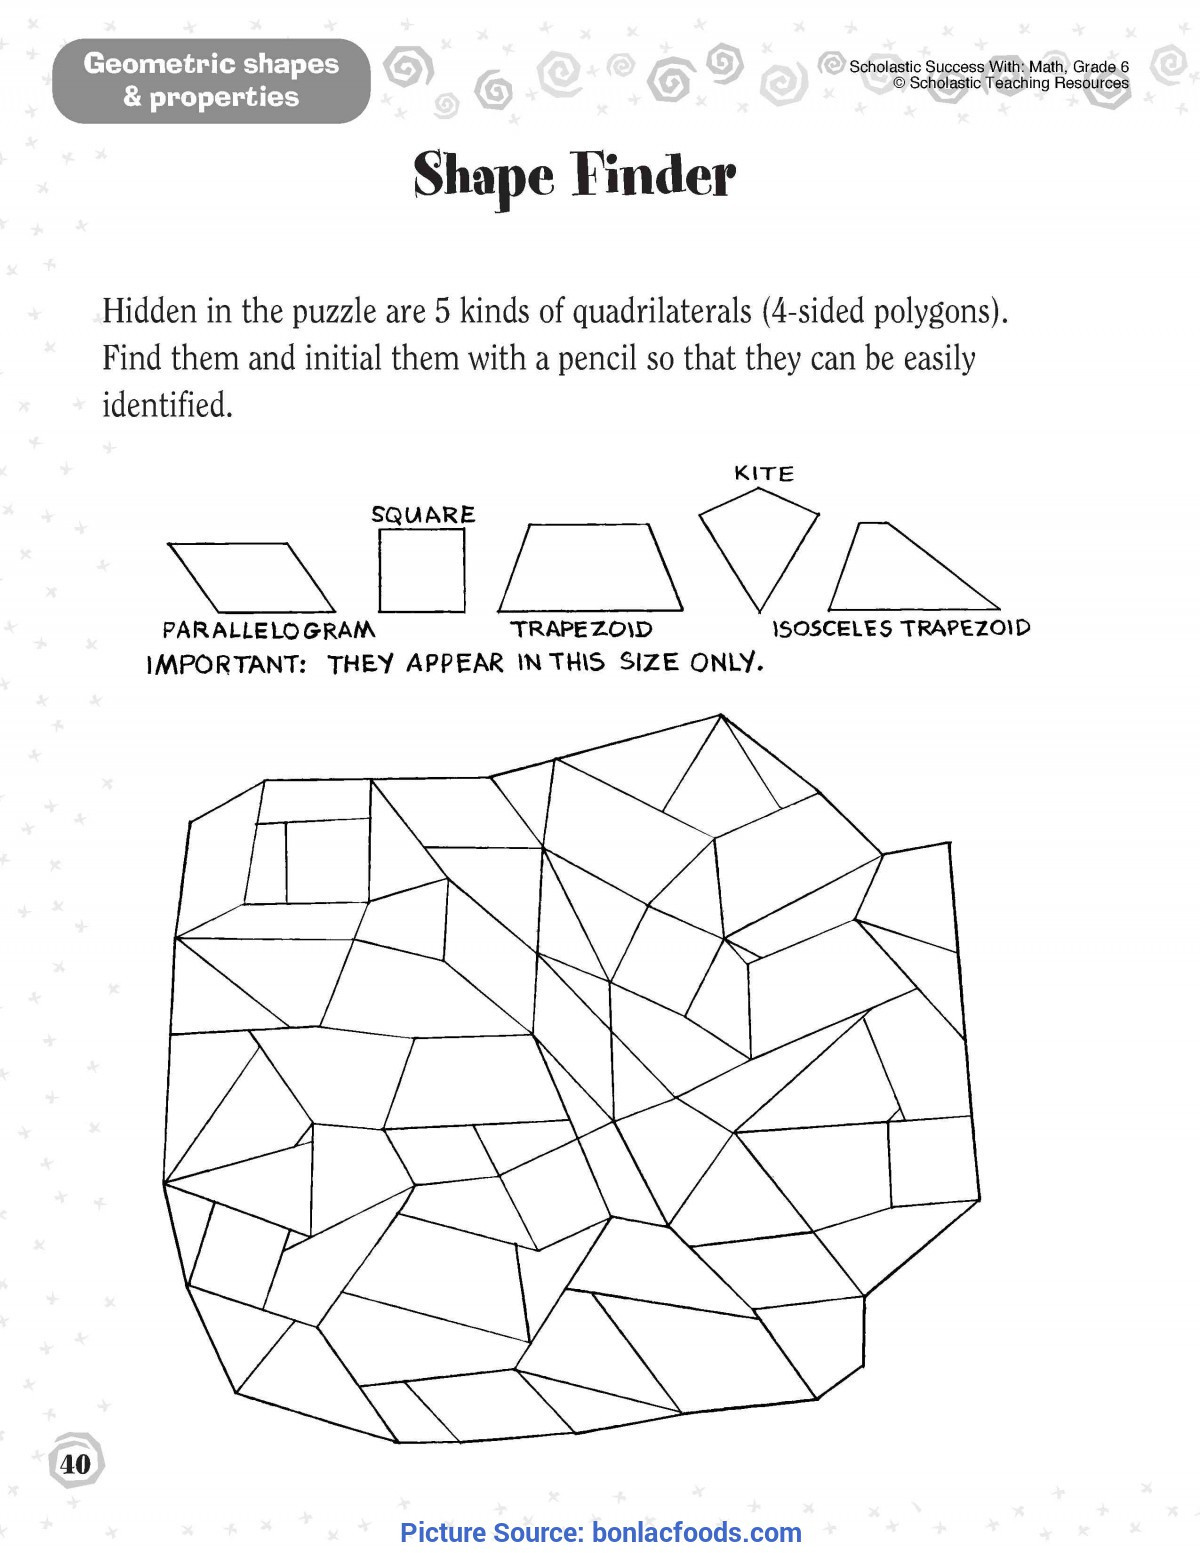 Geometry Worksheet 2nd Grade Find these 2nd Grade Geometry Posters for Free Modeled